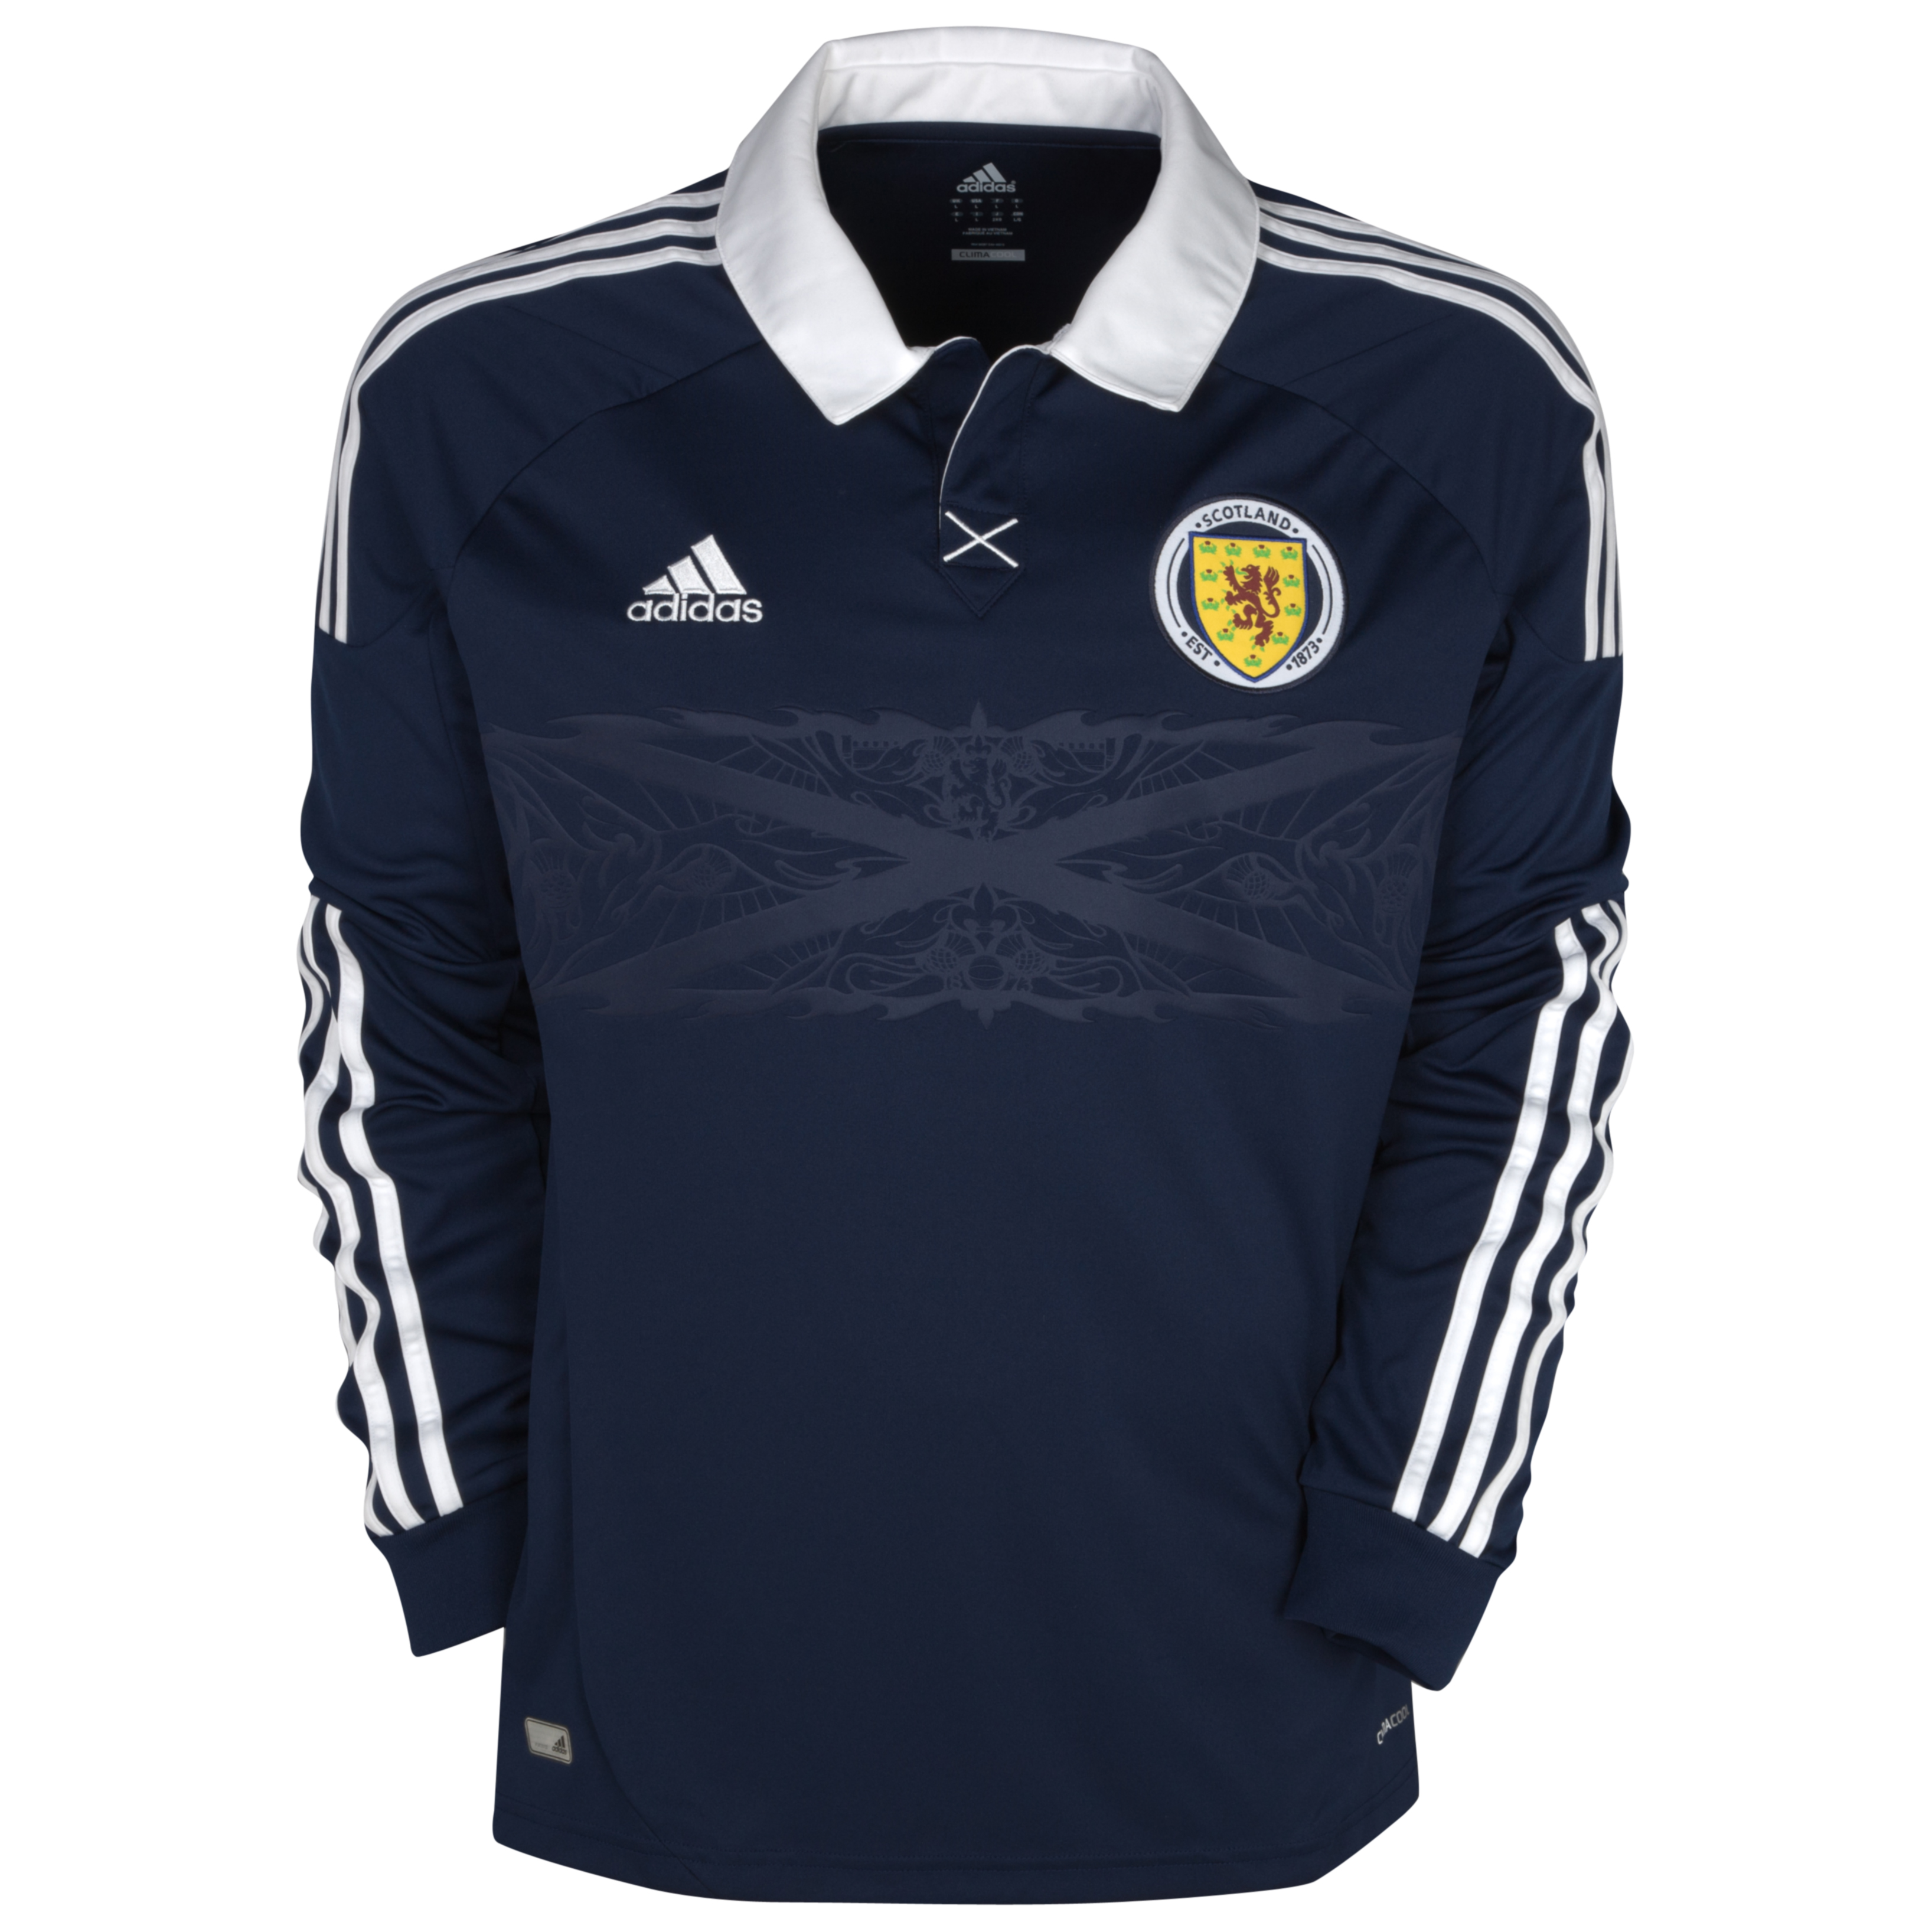 Scotland Home Shirt 2012/14 - Long Sleeved - Dark Indigo/White